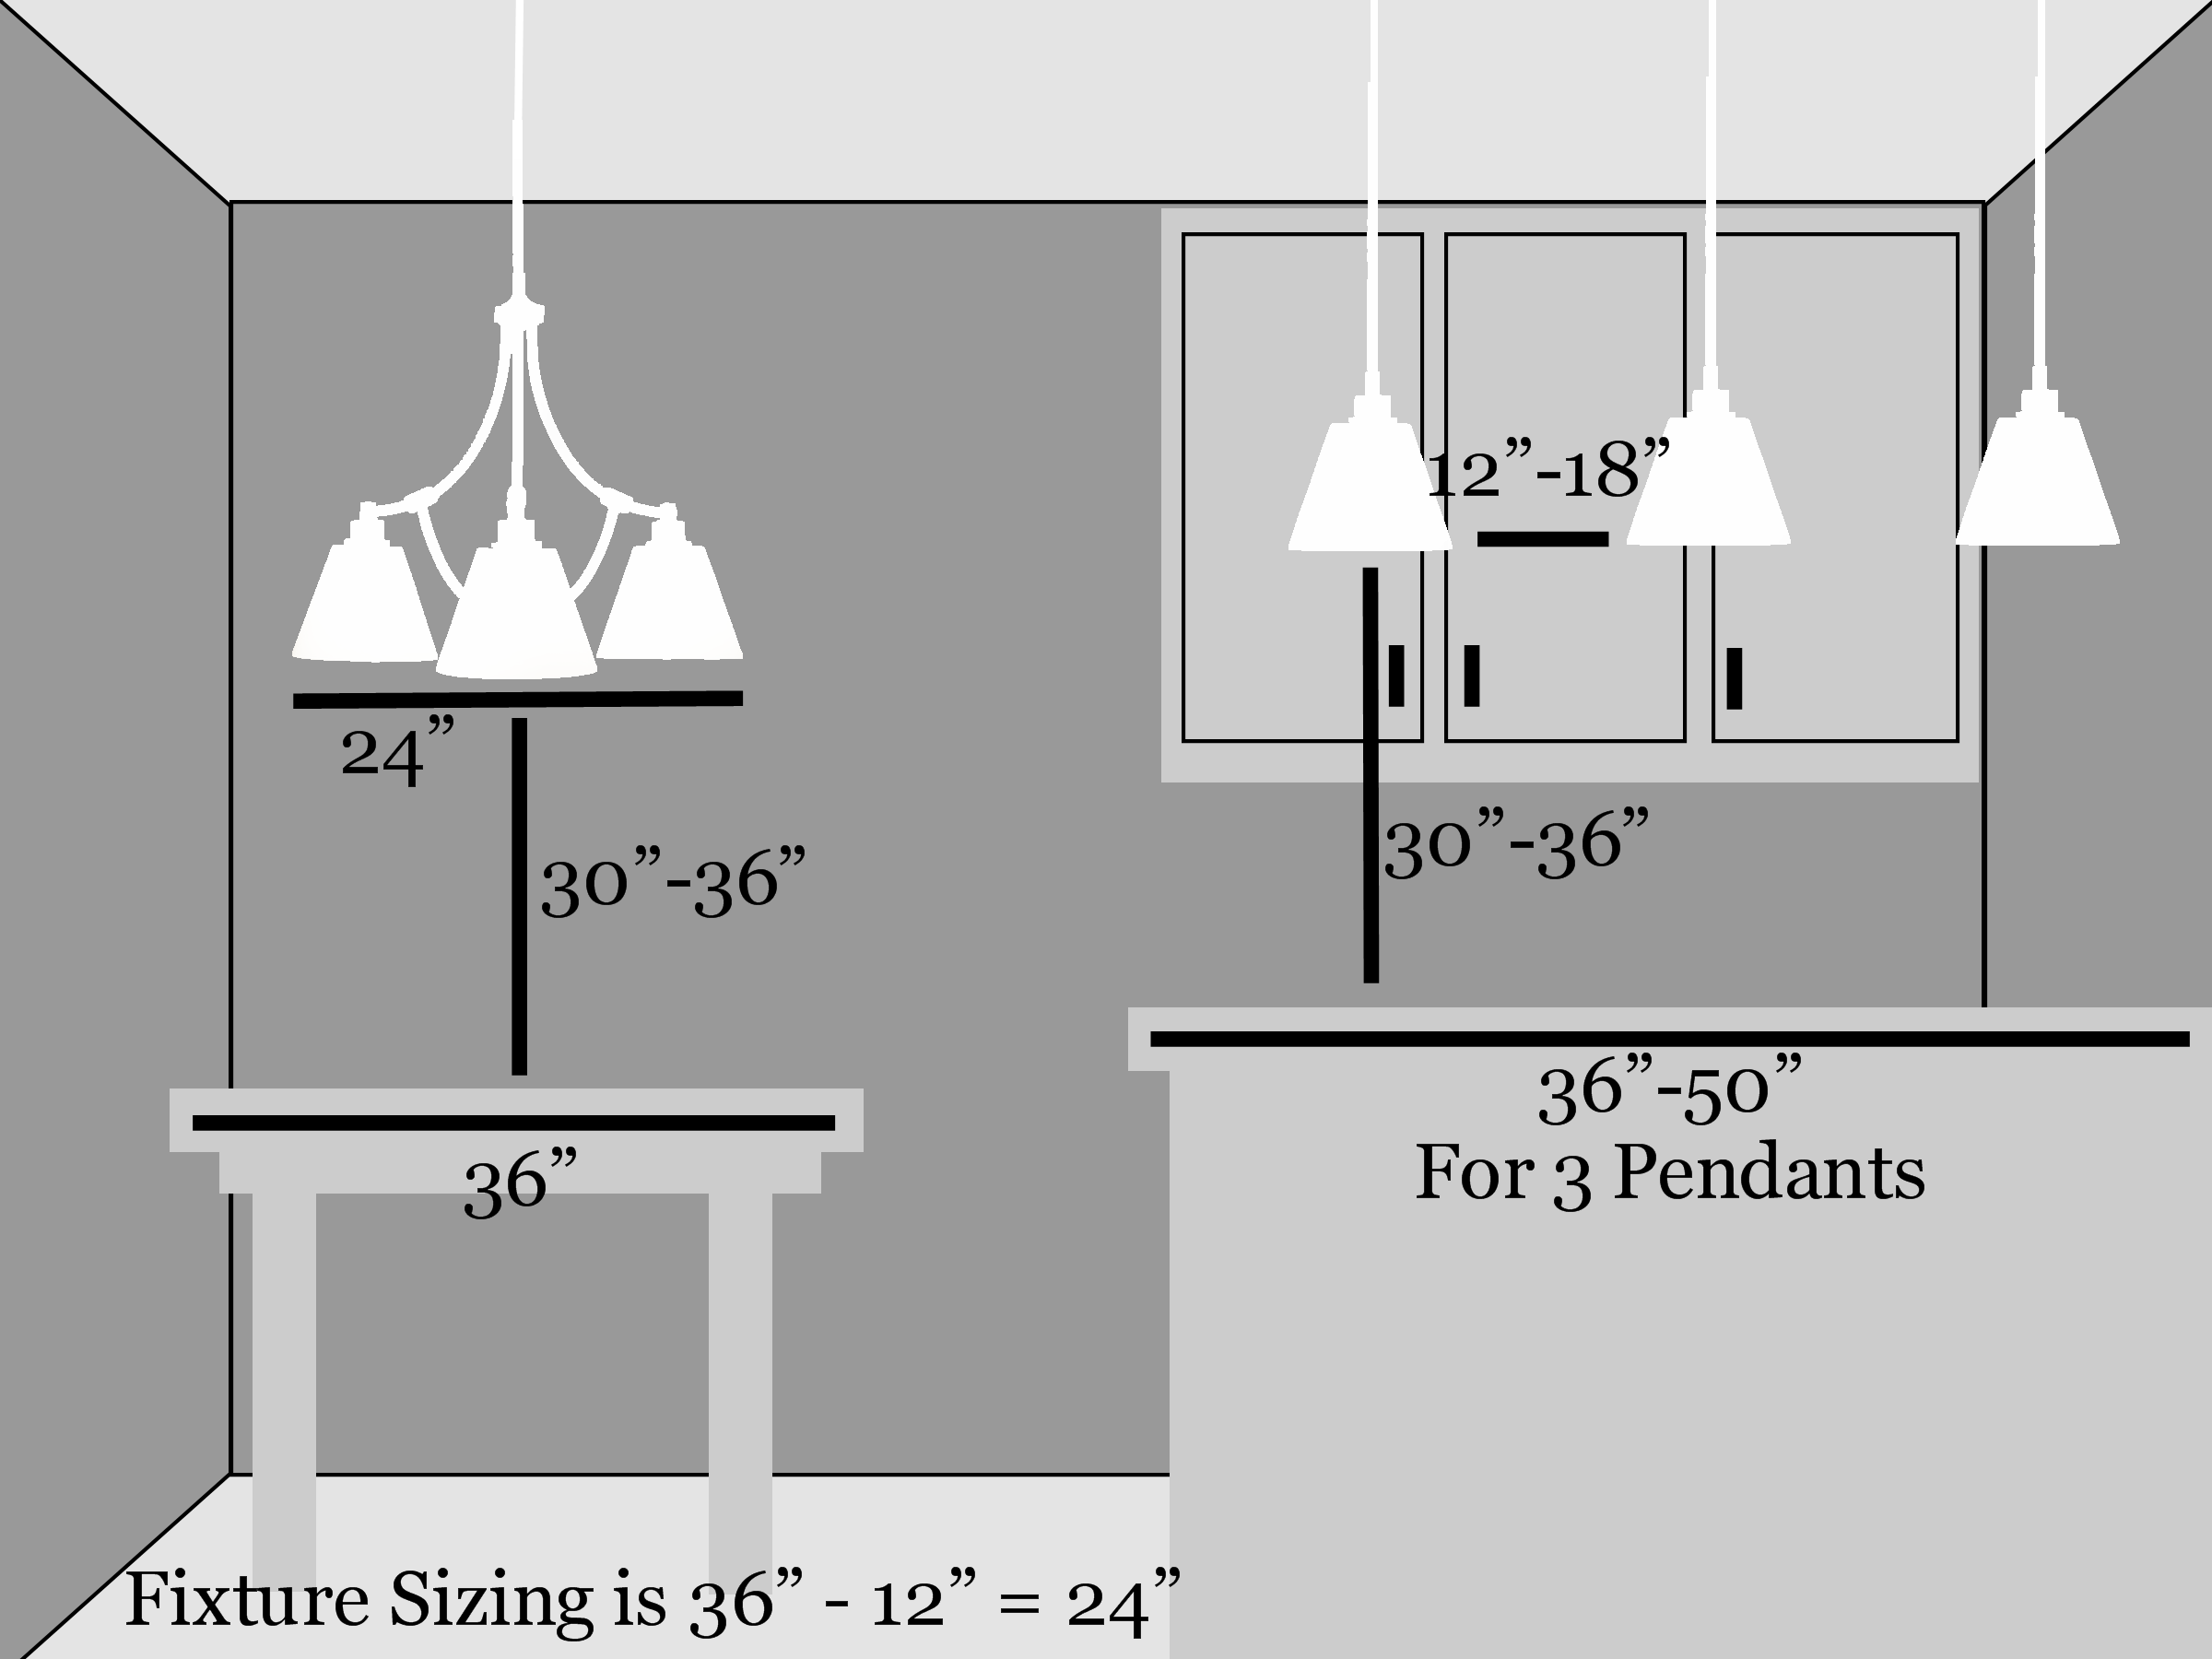 How High Do You Hang Vanity Lights : For general kitchen lighting ceiling mounts, semi-flushes, cans, or even recessed fluorescent ...